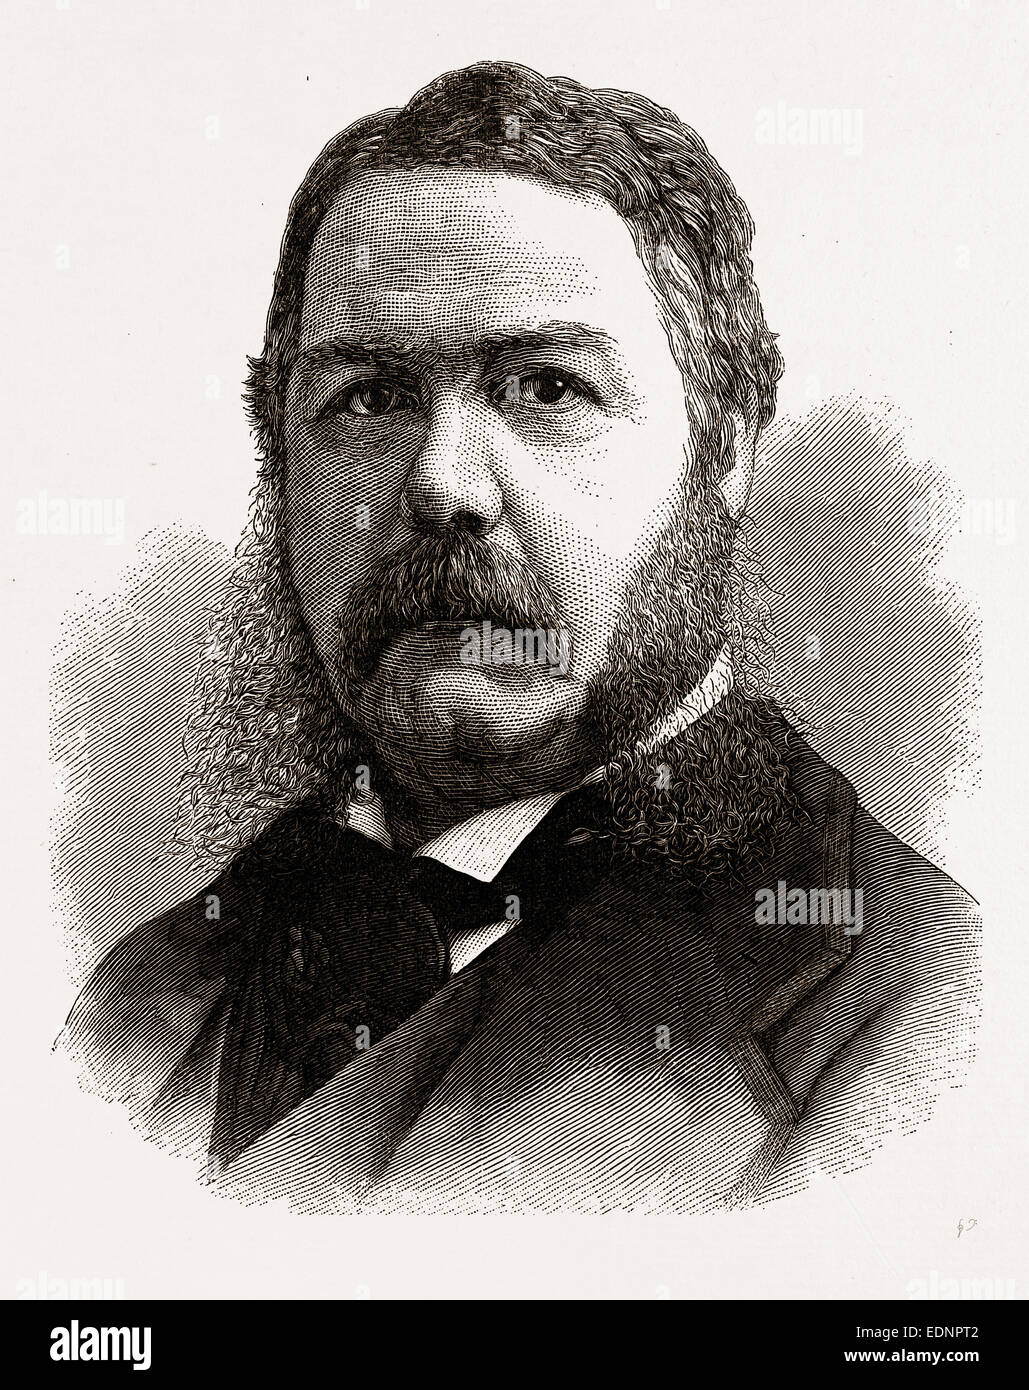 CHESTER A. ARTHUR, VICE-PRESIDENT-ELECT OF THE UNITED STATES, 1880, 19th century engraving, USA, America - Stock Image